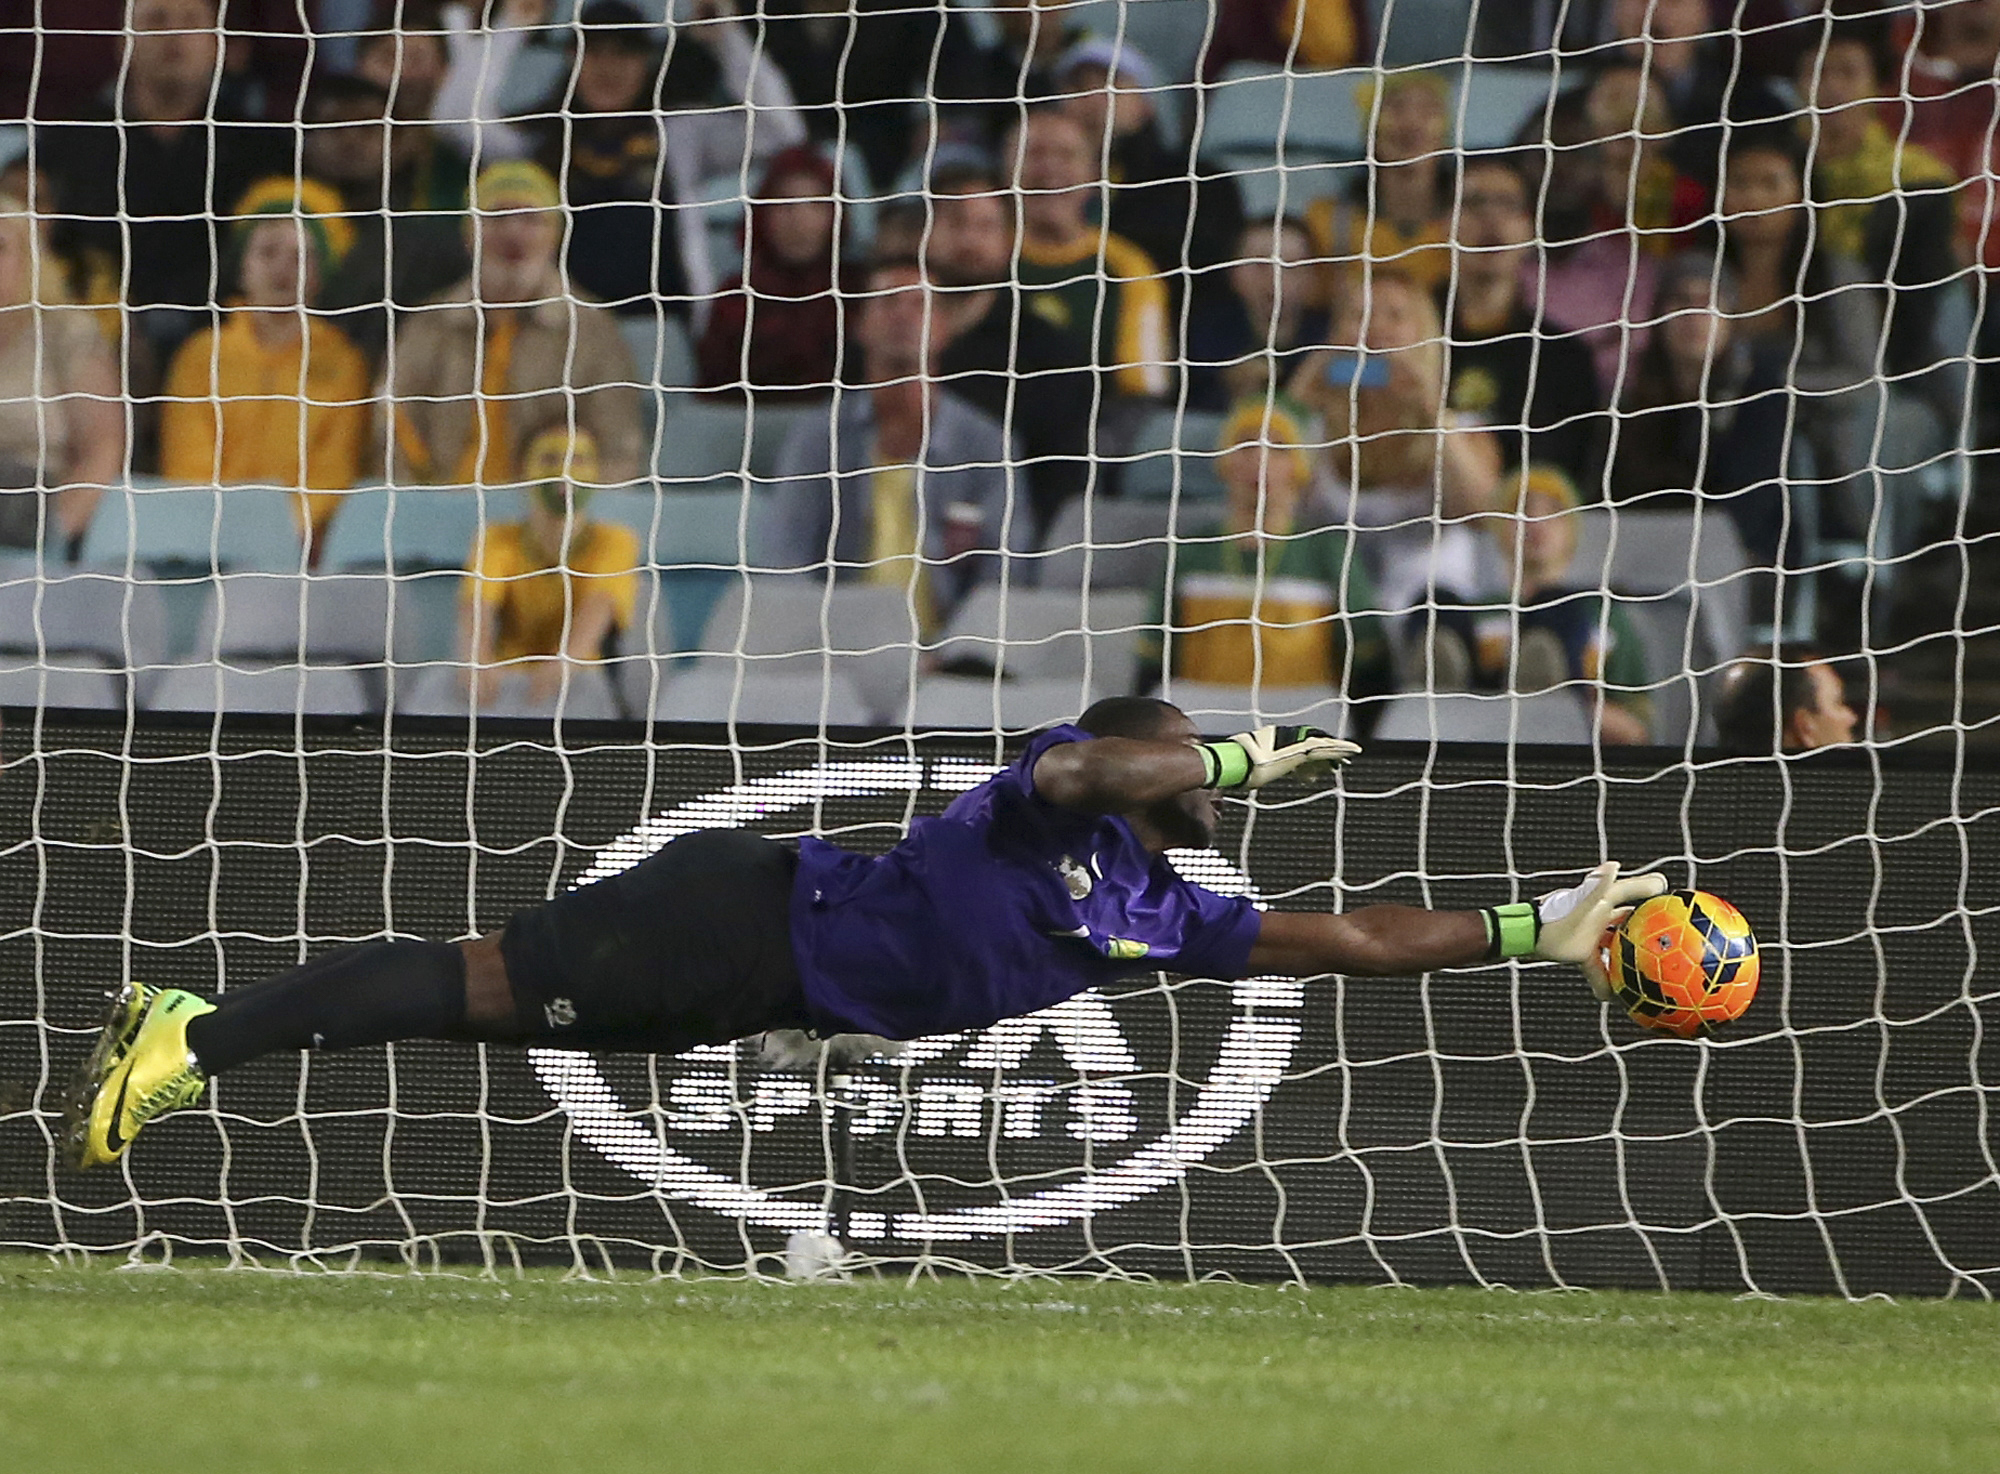 In this file photo dated May 26, 2014, South Africa's goalkeeper Senzo Meyiwa makes a diving save against Australia during their friendly soccer match in Sydney